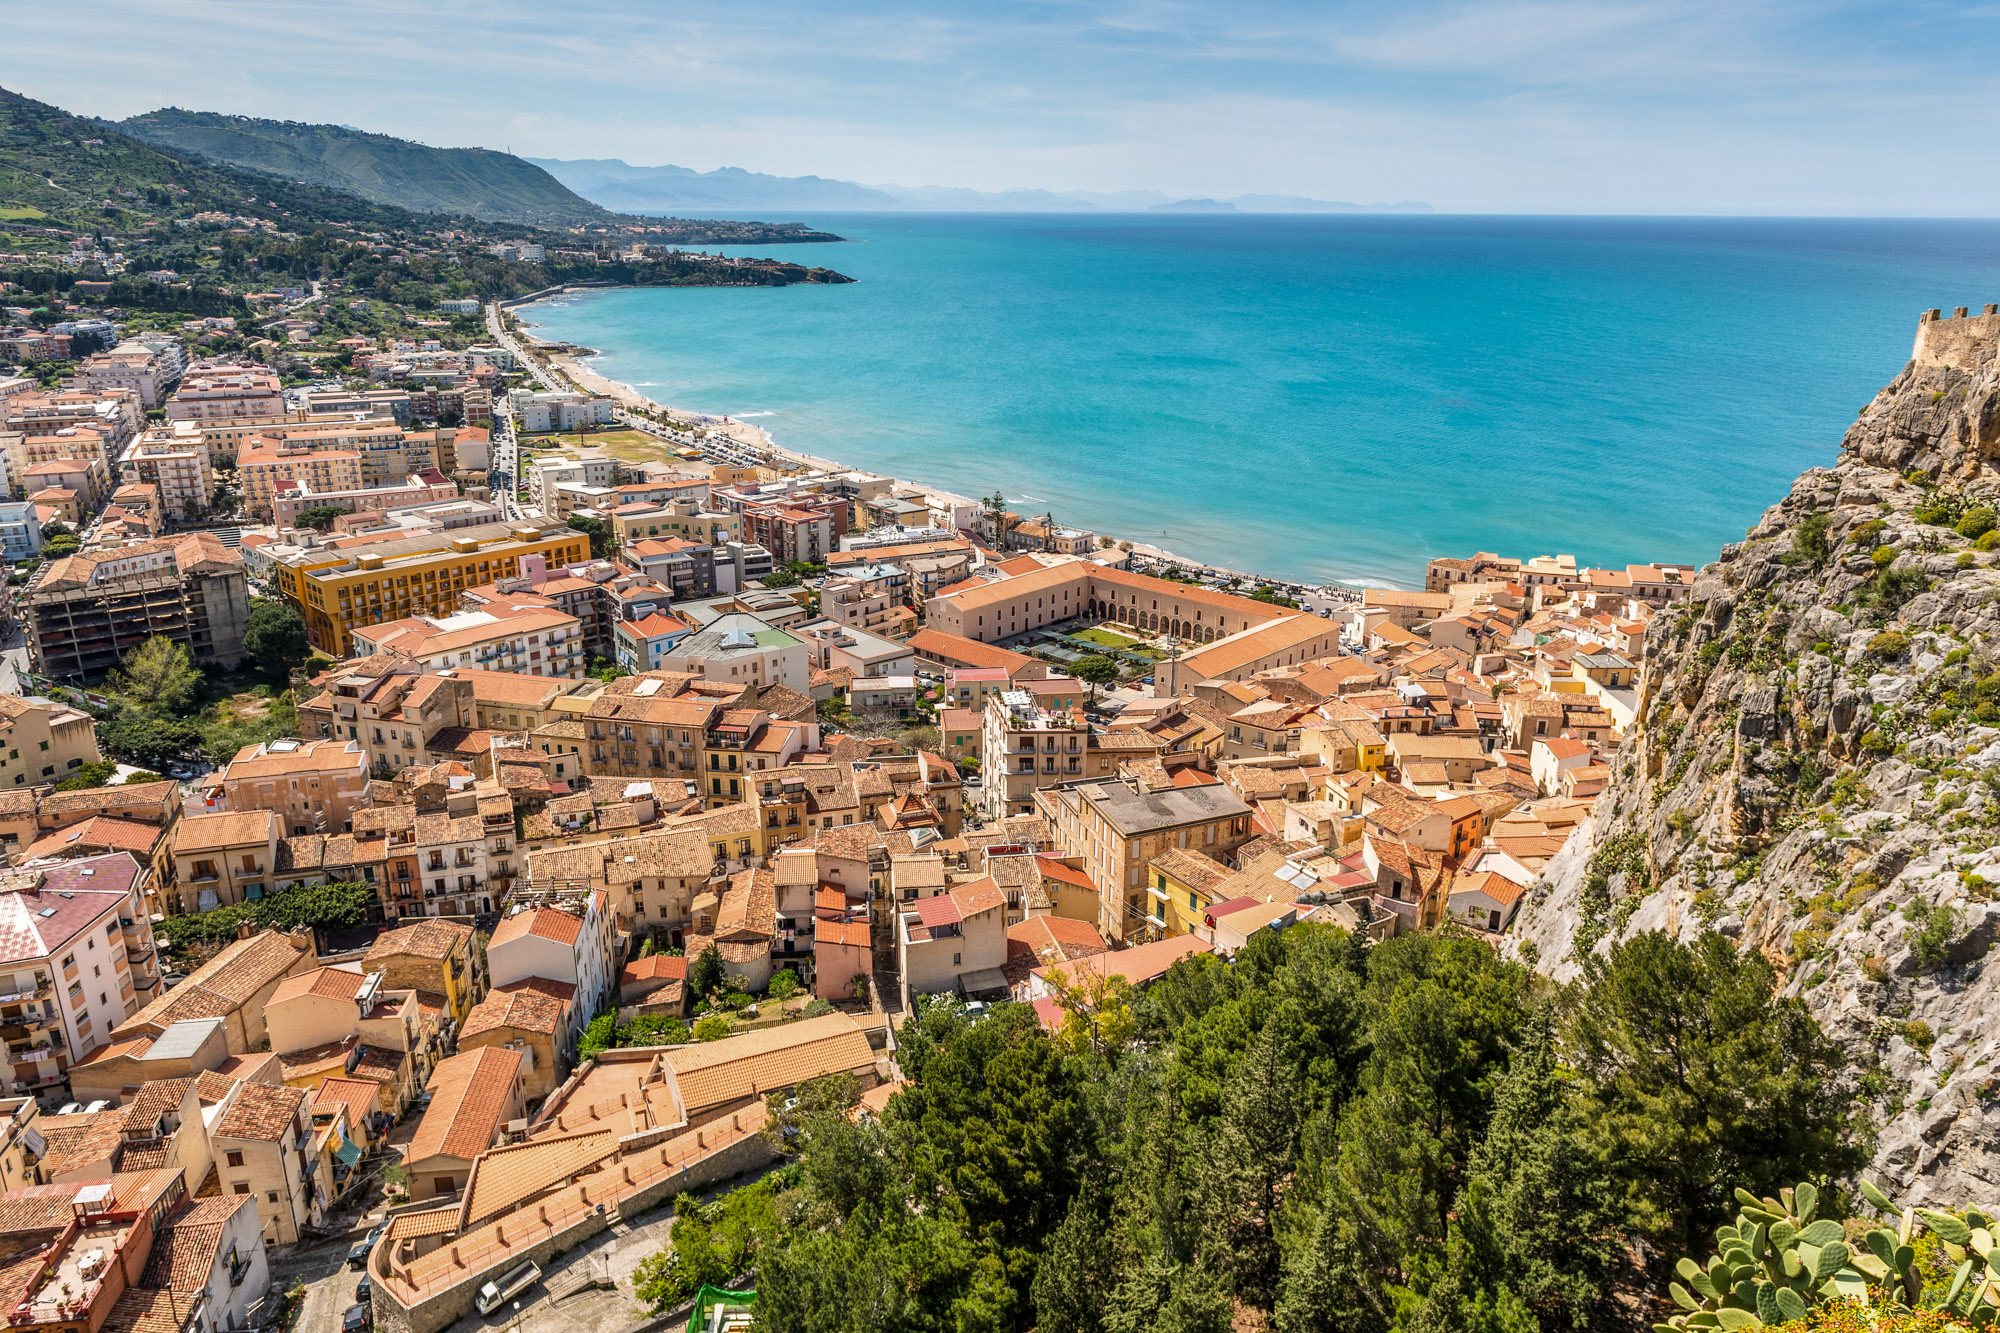 Cefalù - Sicily - Italy - Jeff On The Road - Photo by Jacek Dylag on Unsplash - https://unsplash.com/photos/tR54rO5JwsA